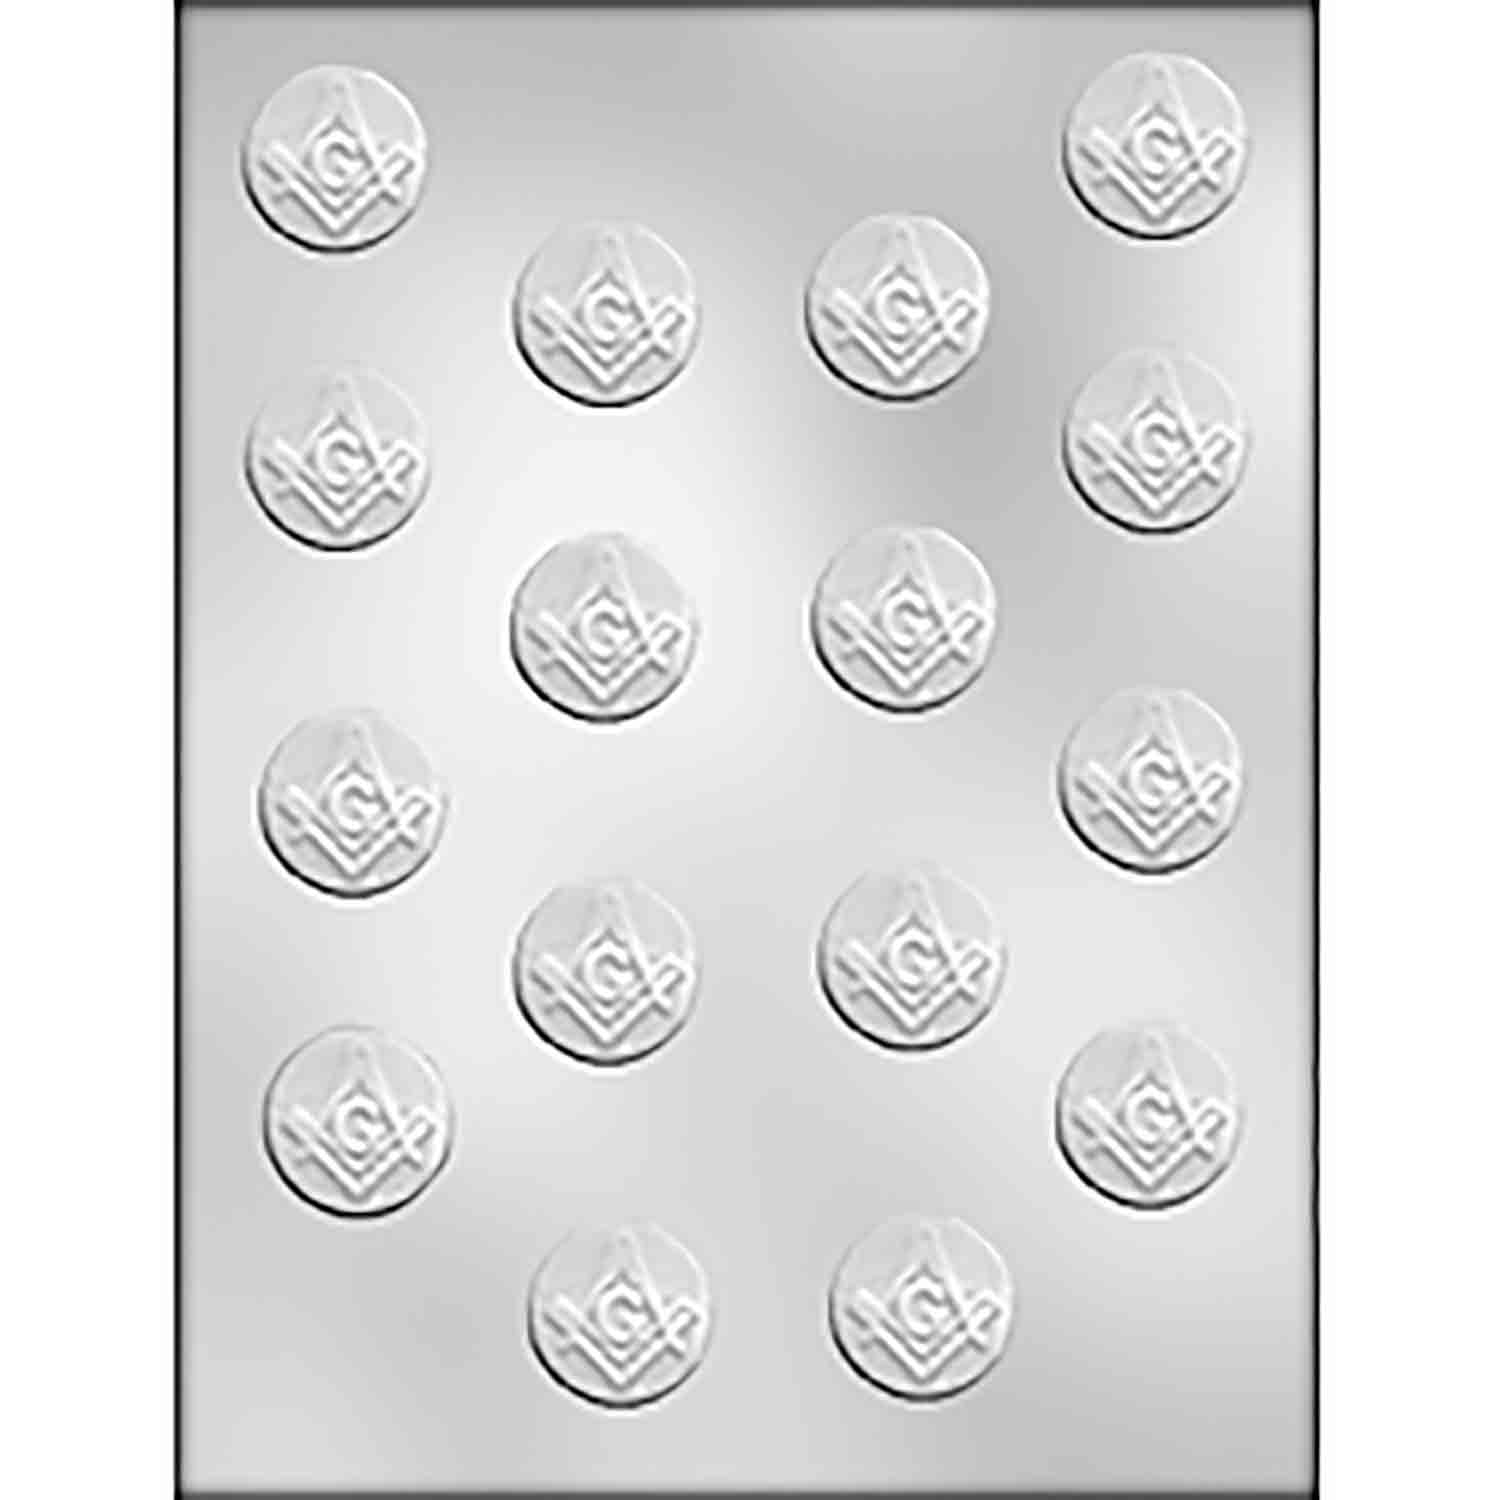 Masonic Mint Chocolate Candy Mold